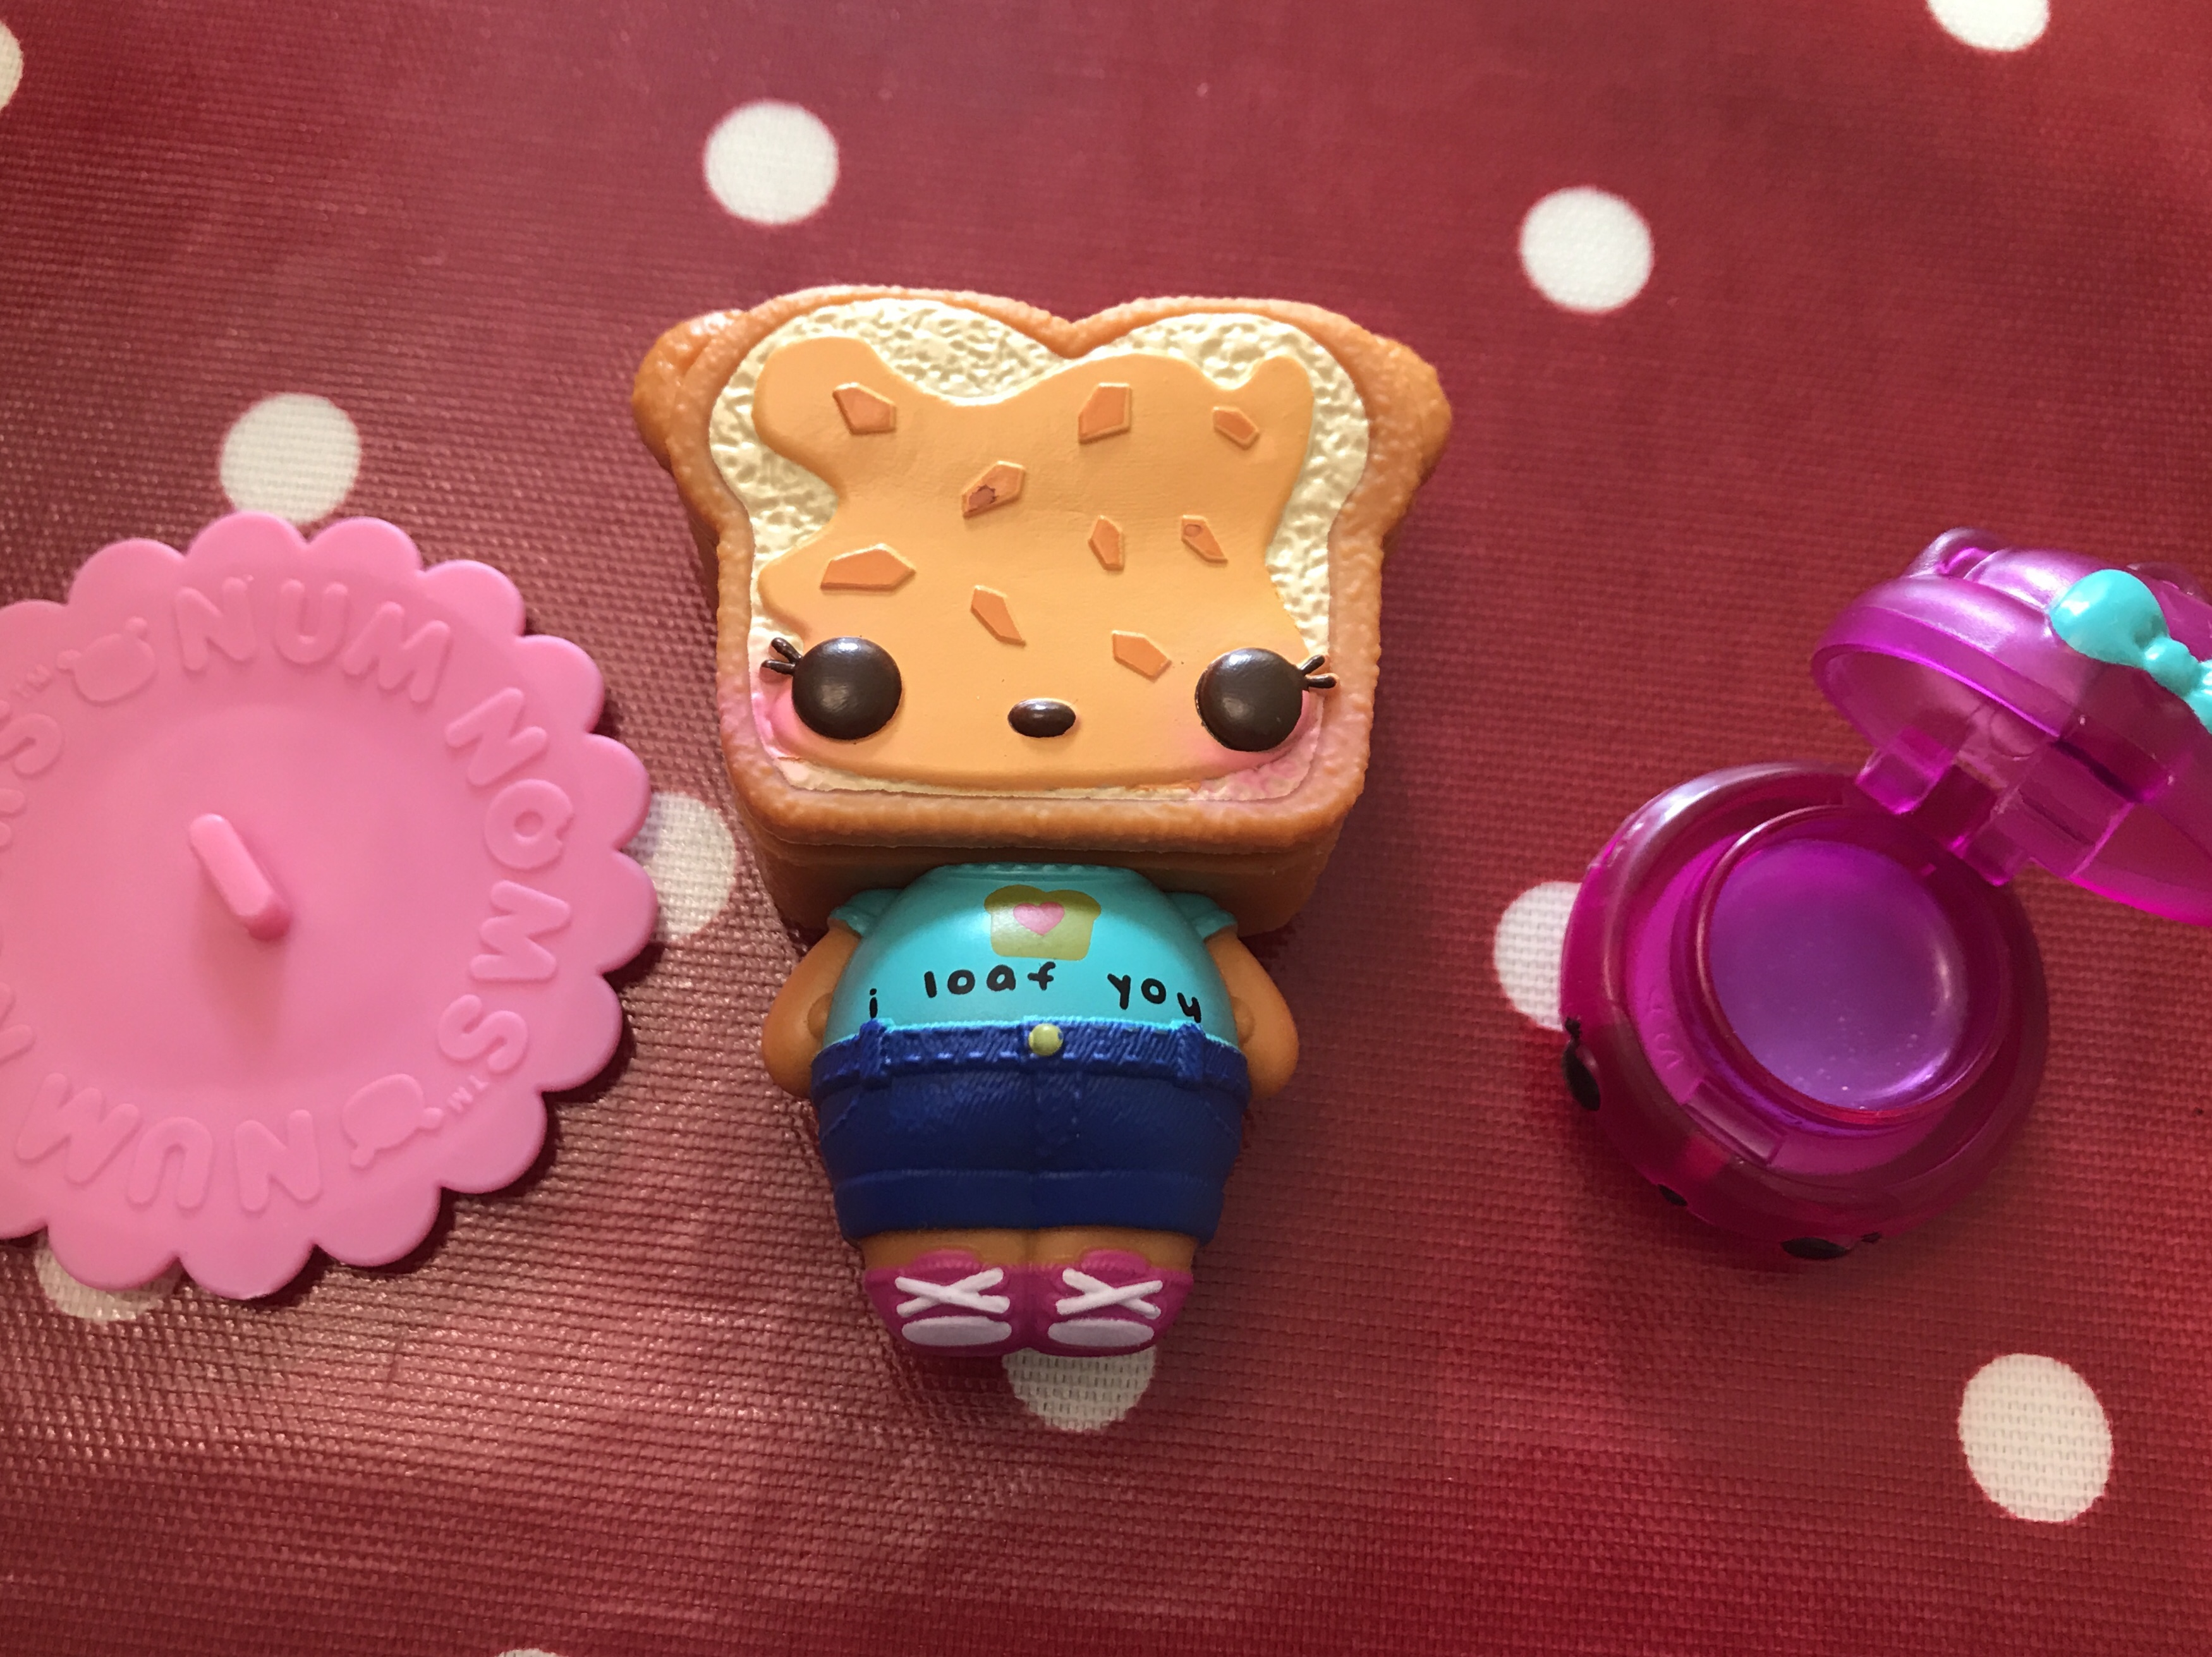 Celebrating Easter With Num Noms Latest Collectible Toys and Baking Easter Egg Bark